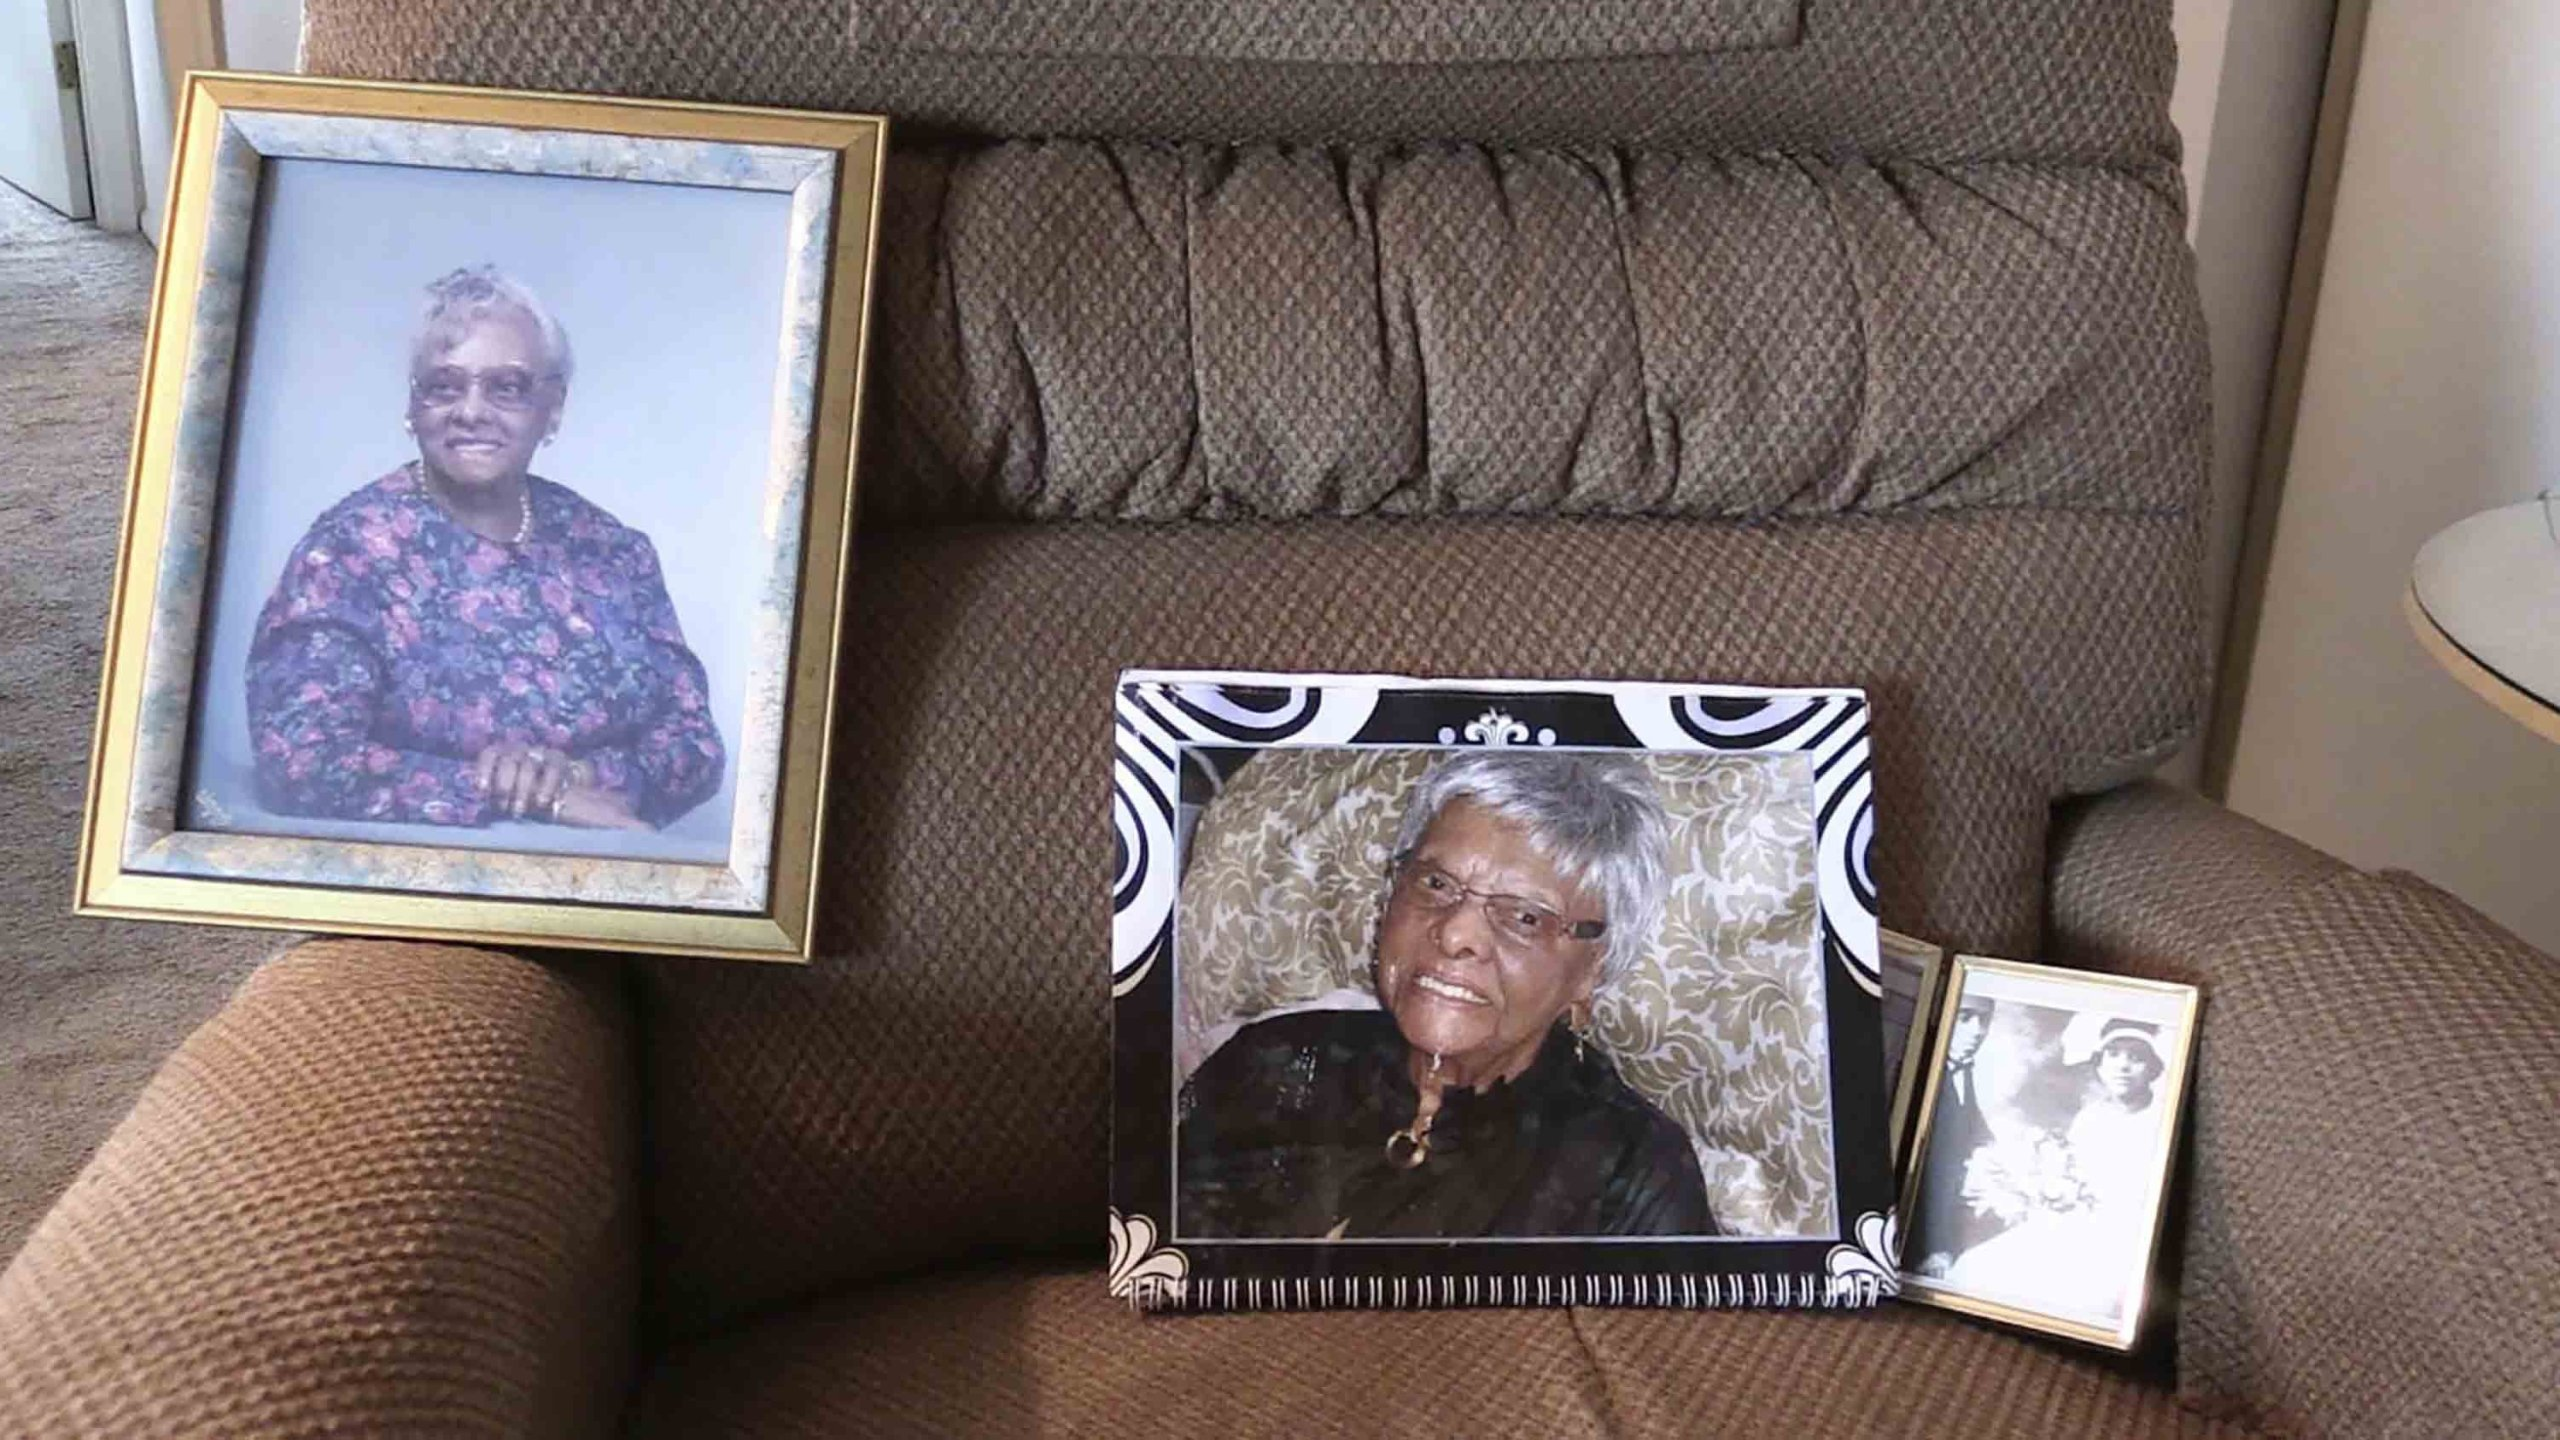 In this May 11, 2018 frame from video, photos of Lessie Brown rest on a chair in Cleveland Heights, Ohio. (Credit: David Petkiewicz / AP via CNN)